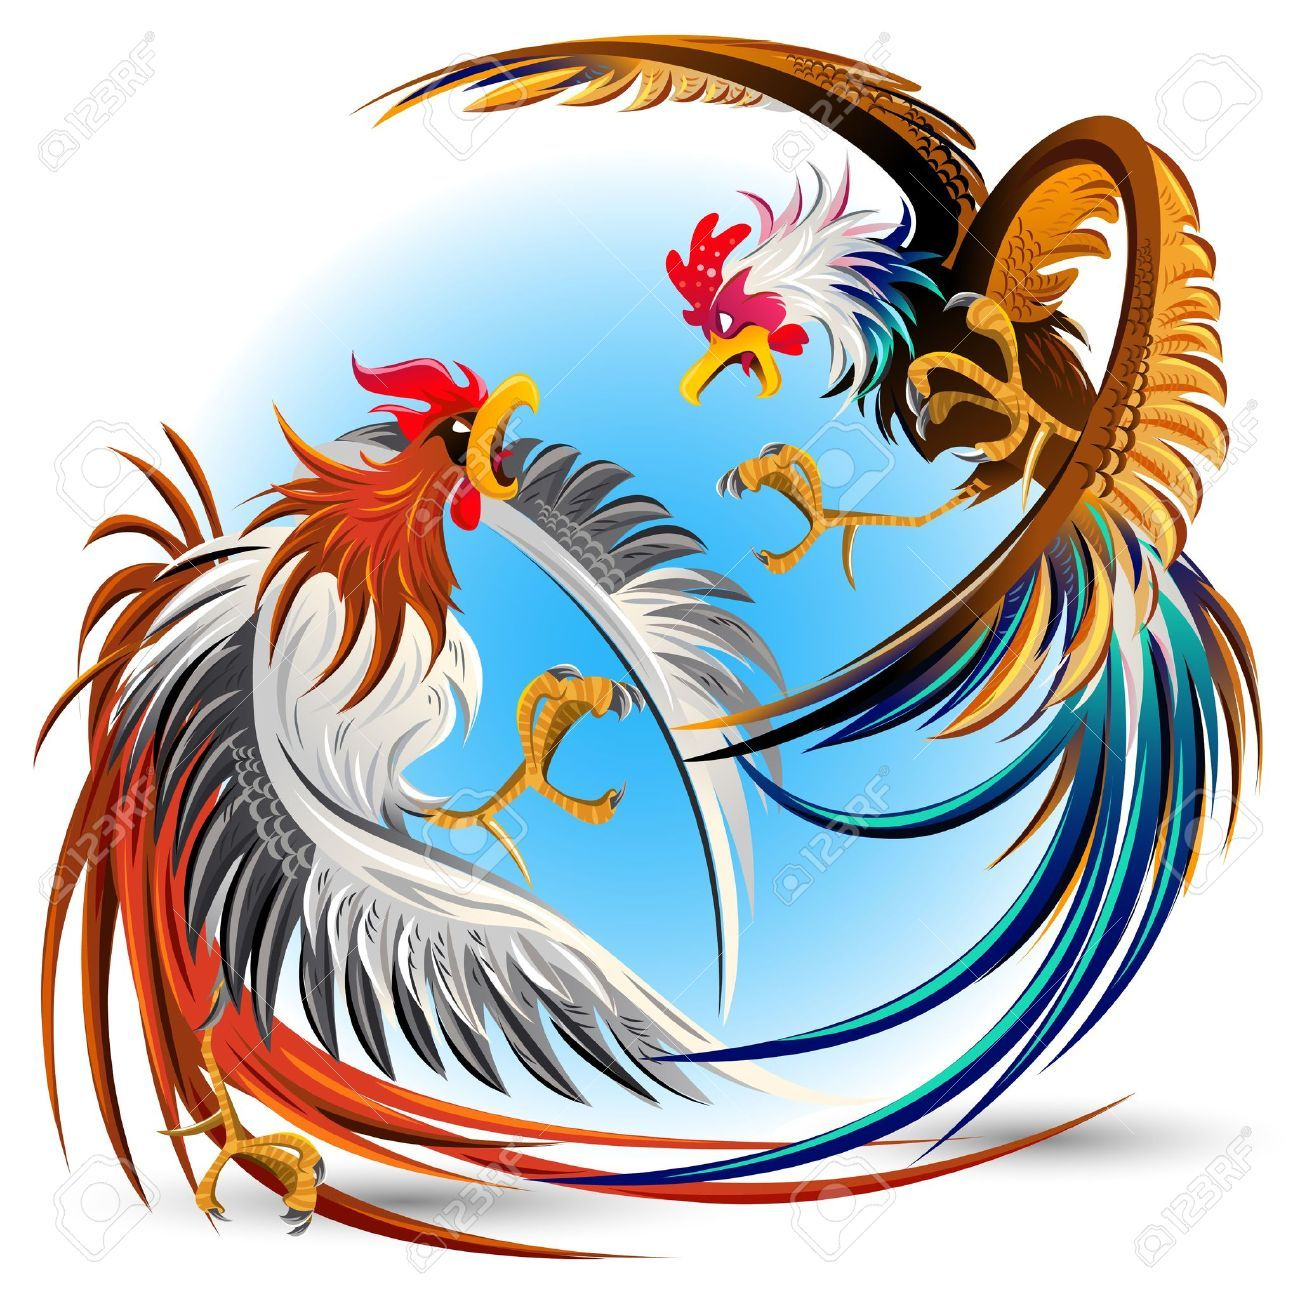 Asian fighting rooster art - Google Search | rooster | Pinterest ...